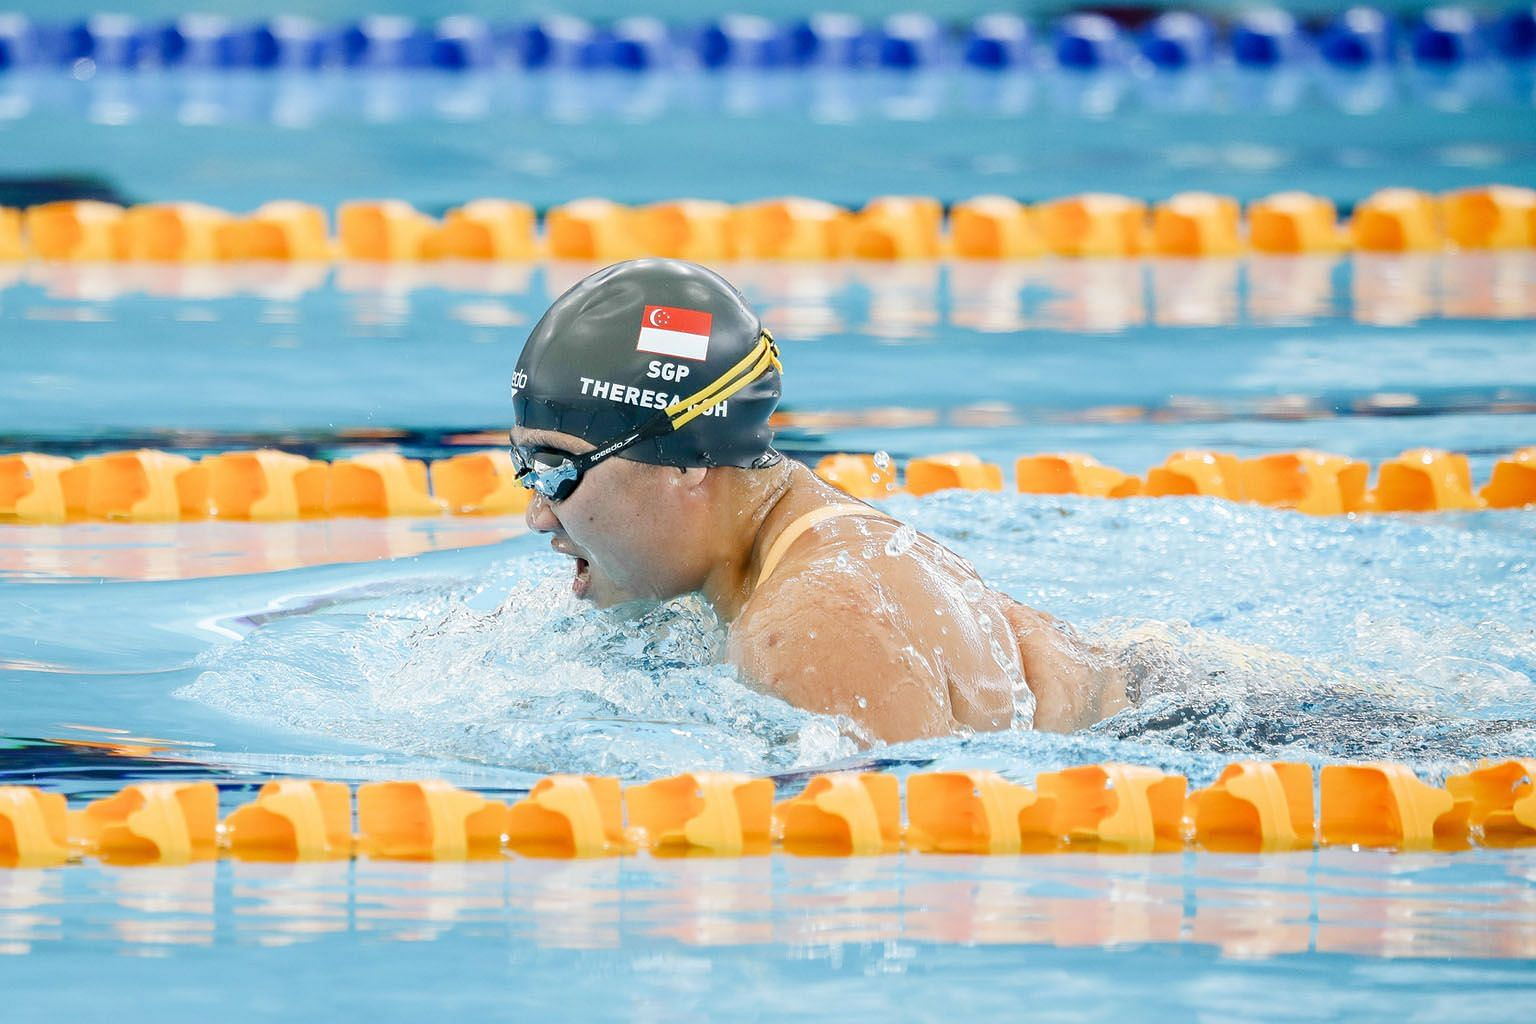 Theresa Goh on her way to winning the SB4 100m breaststroke at the Kuala Lumpur Asean Para Games yesterday. She clocked 2min 4.16sec to win the race, more than 24 seconds ahead of Danh Thi My Thanh of Vietnam, who was second with a time of 2:28.24.